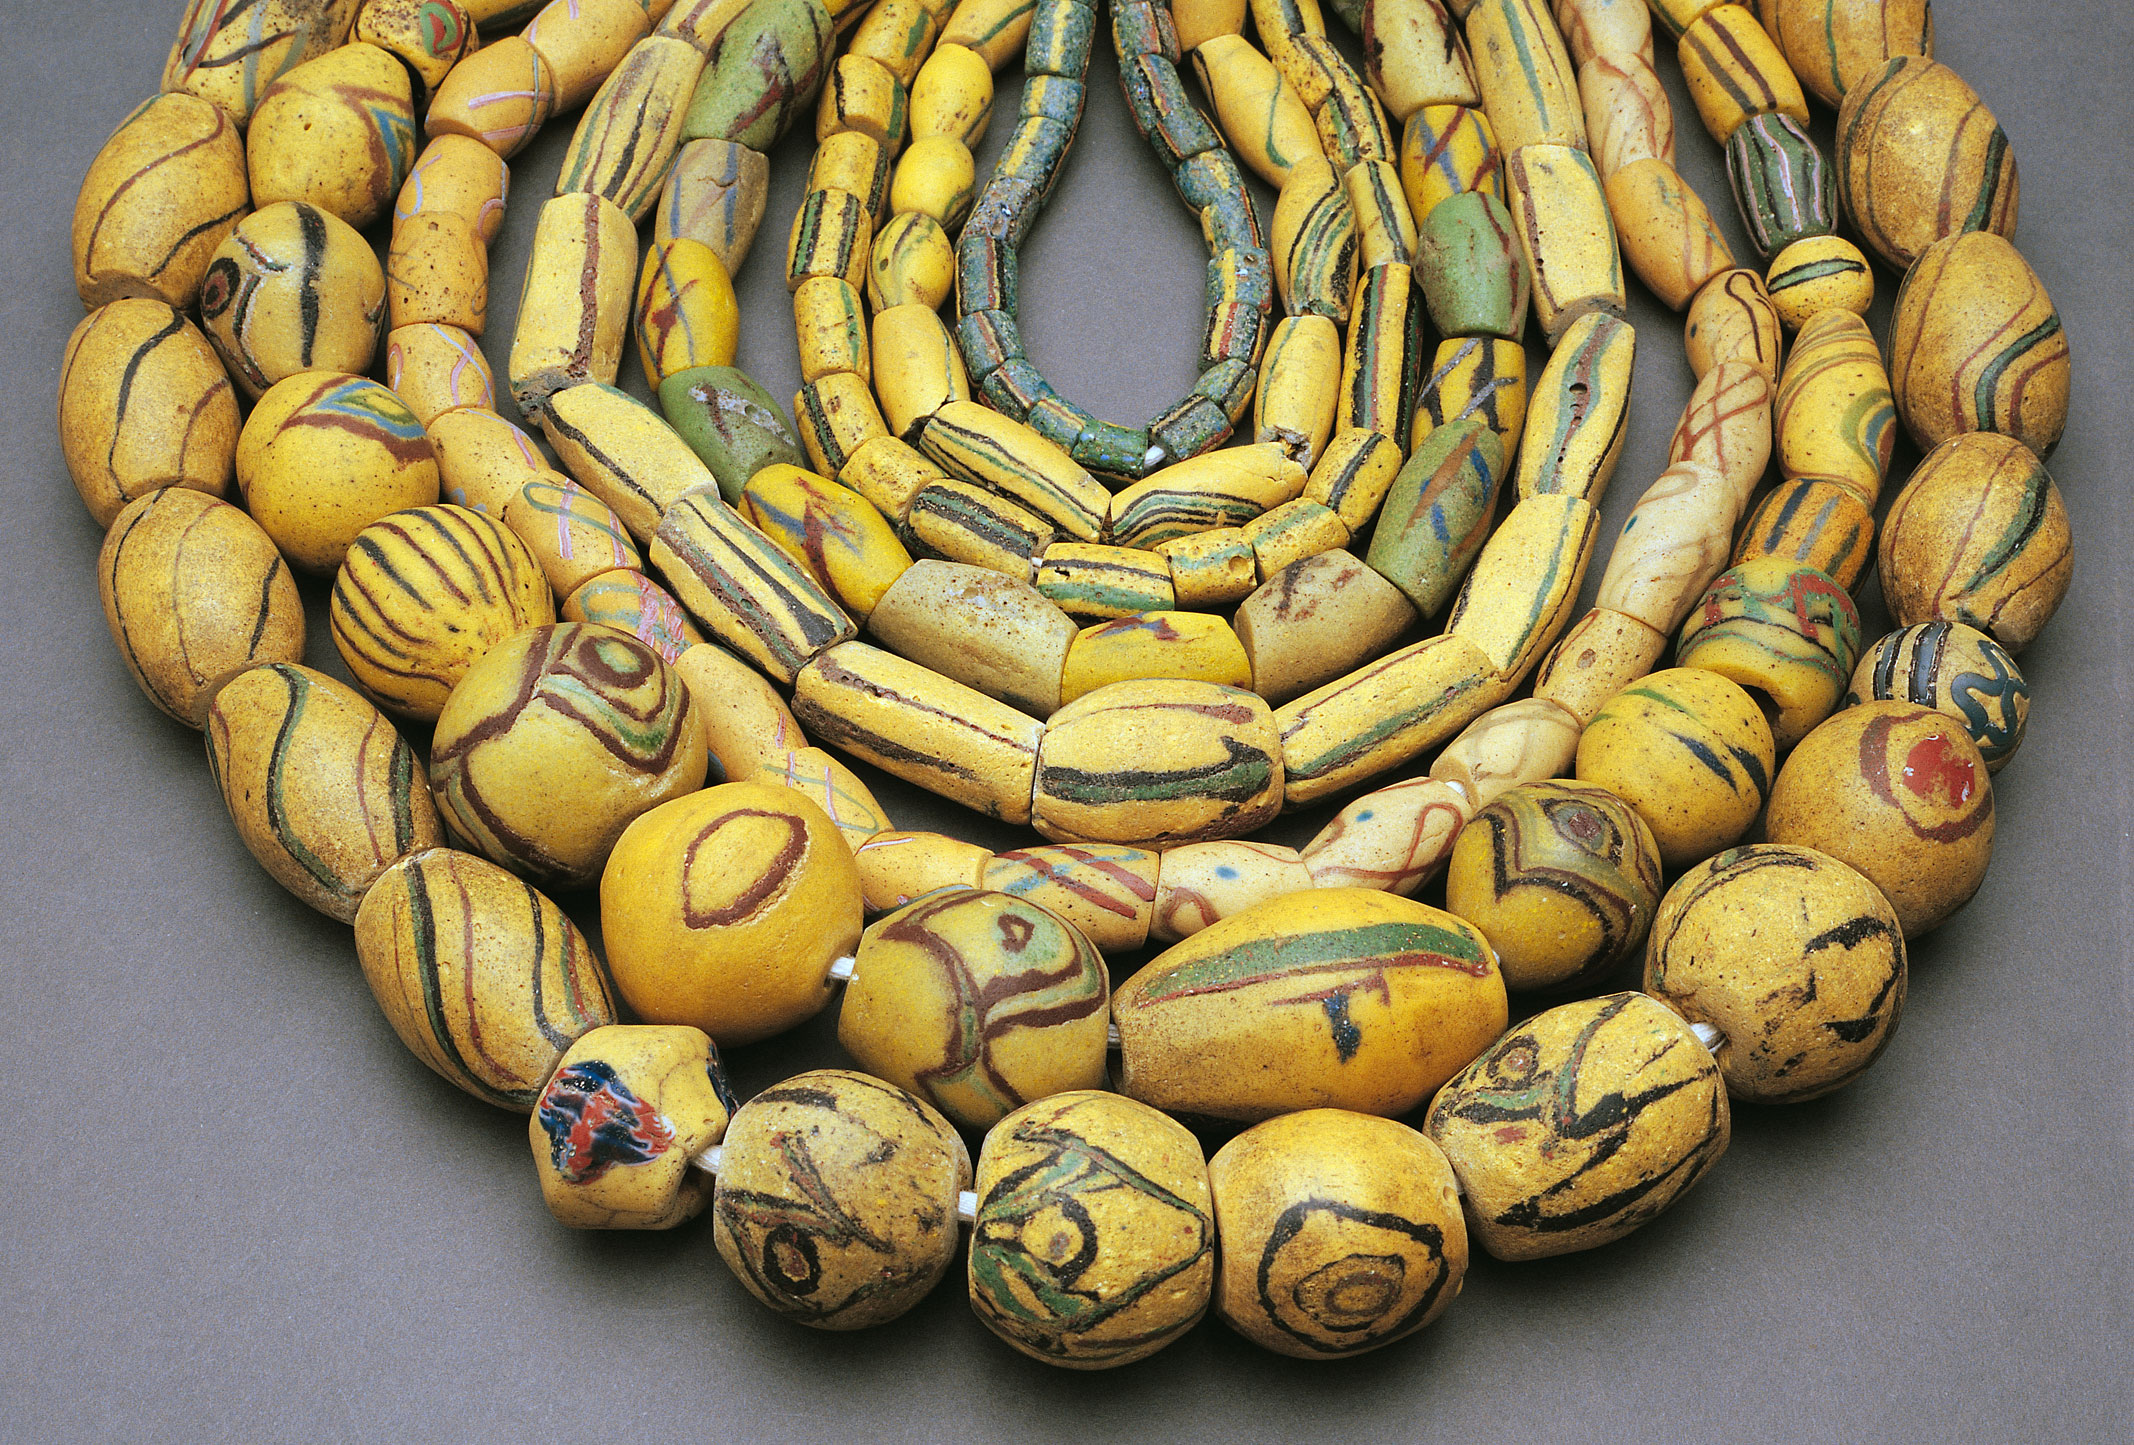 Assortment of Ghanaian powder glass beads, primarily adjagba types, many with cruciform decorations and preformed elements, both indigenous and European. Largest bead ca. 5 cm long. Courtesy: Picard Collection. RKL